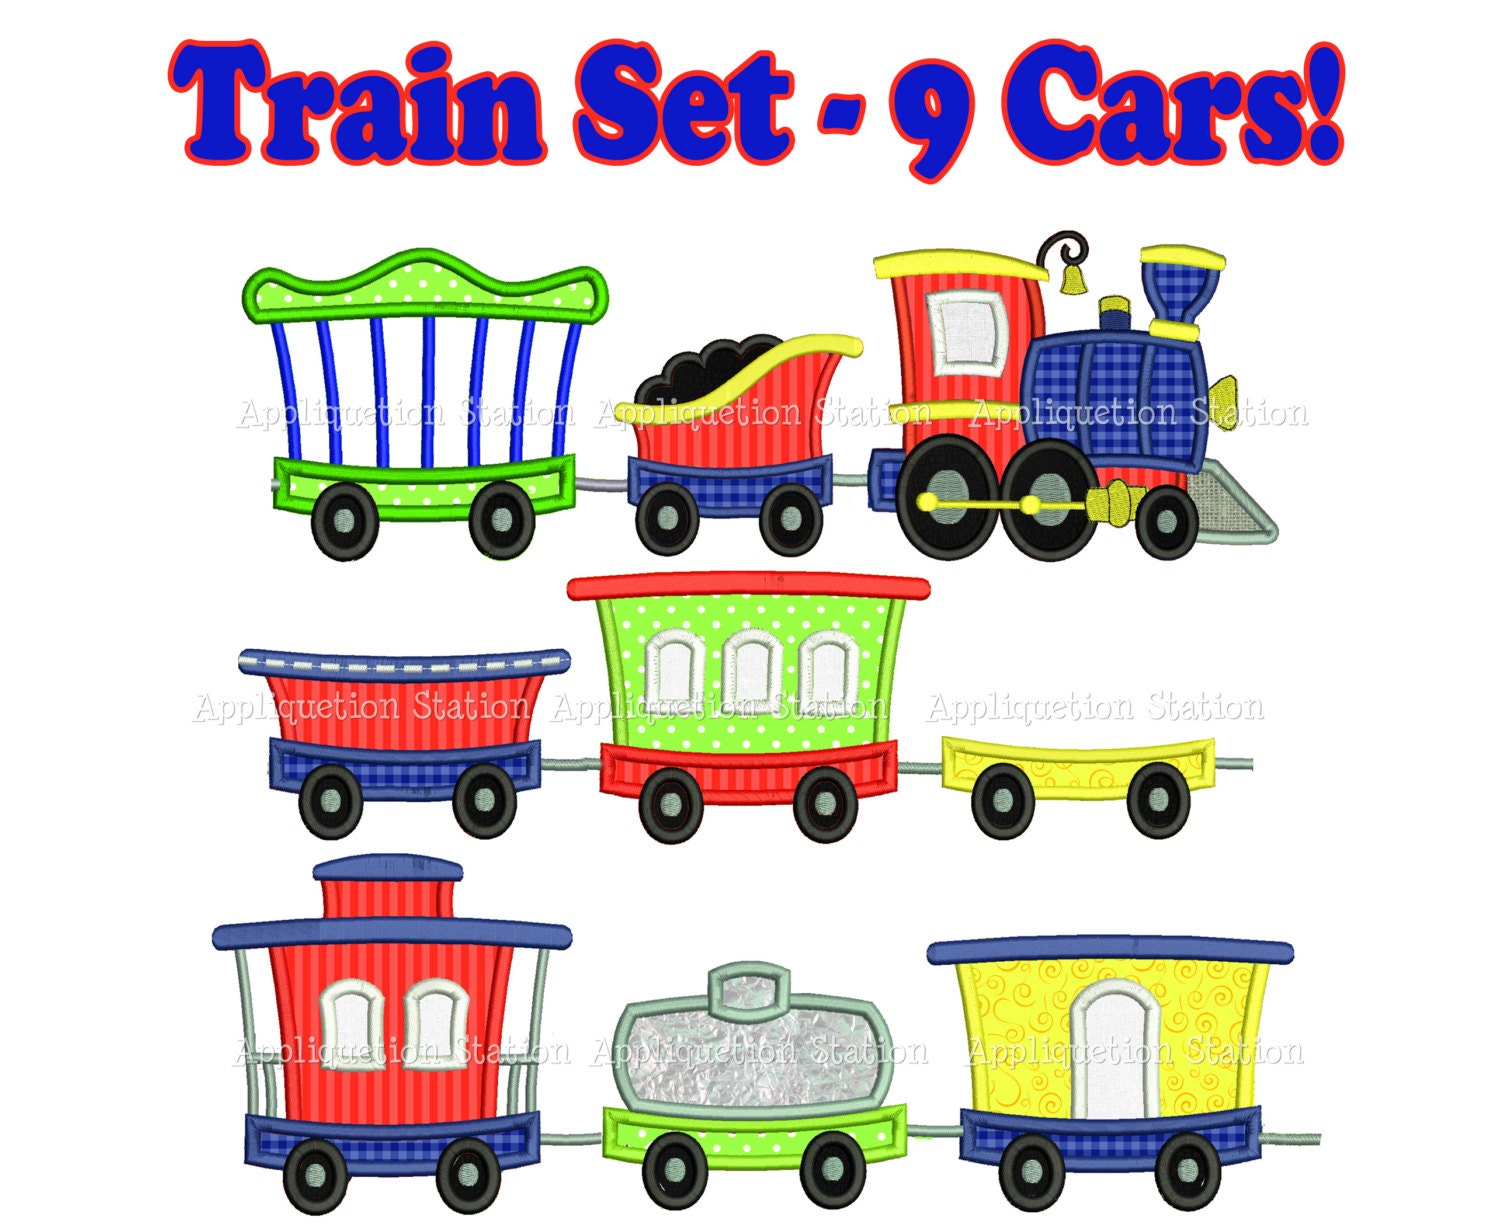 Train full set engine tender caboose cars of